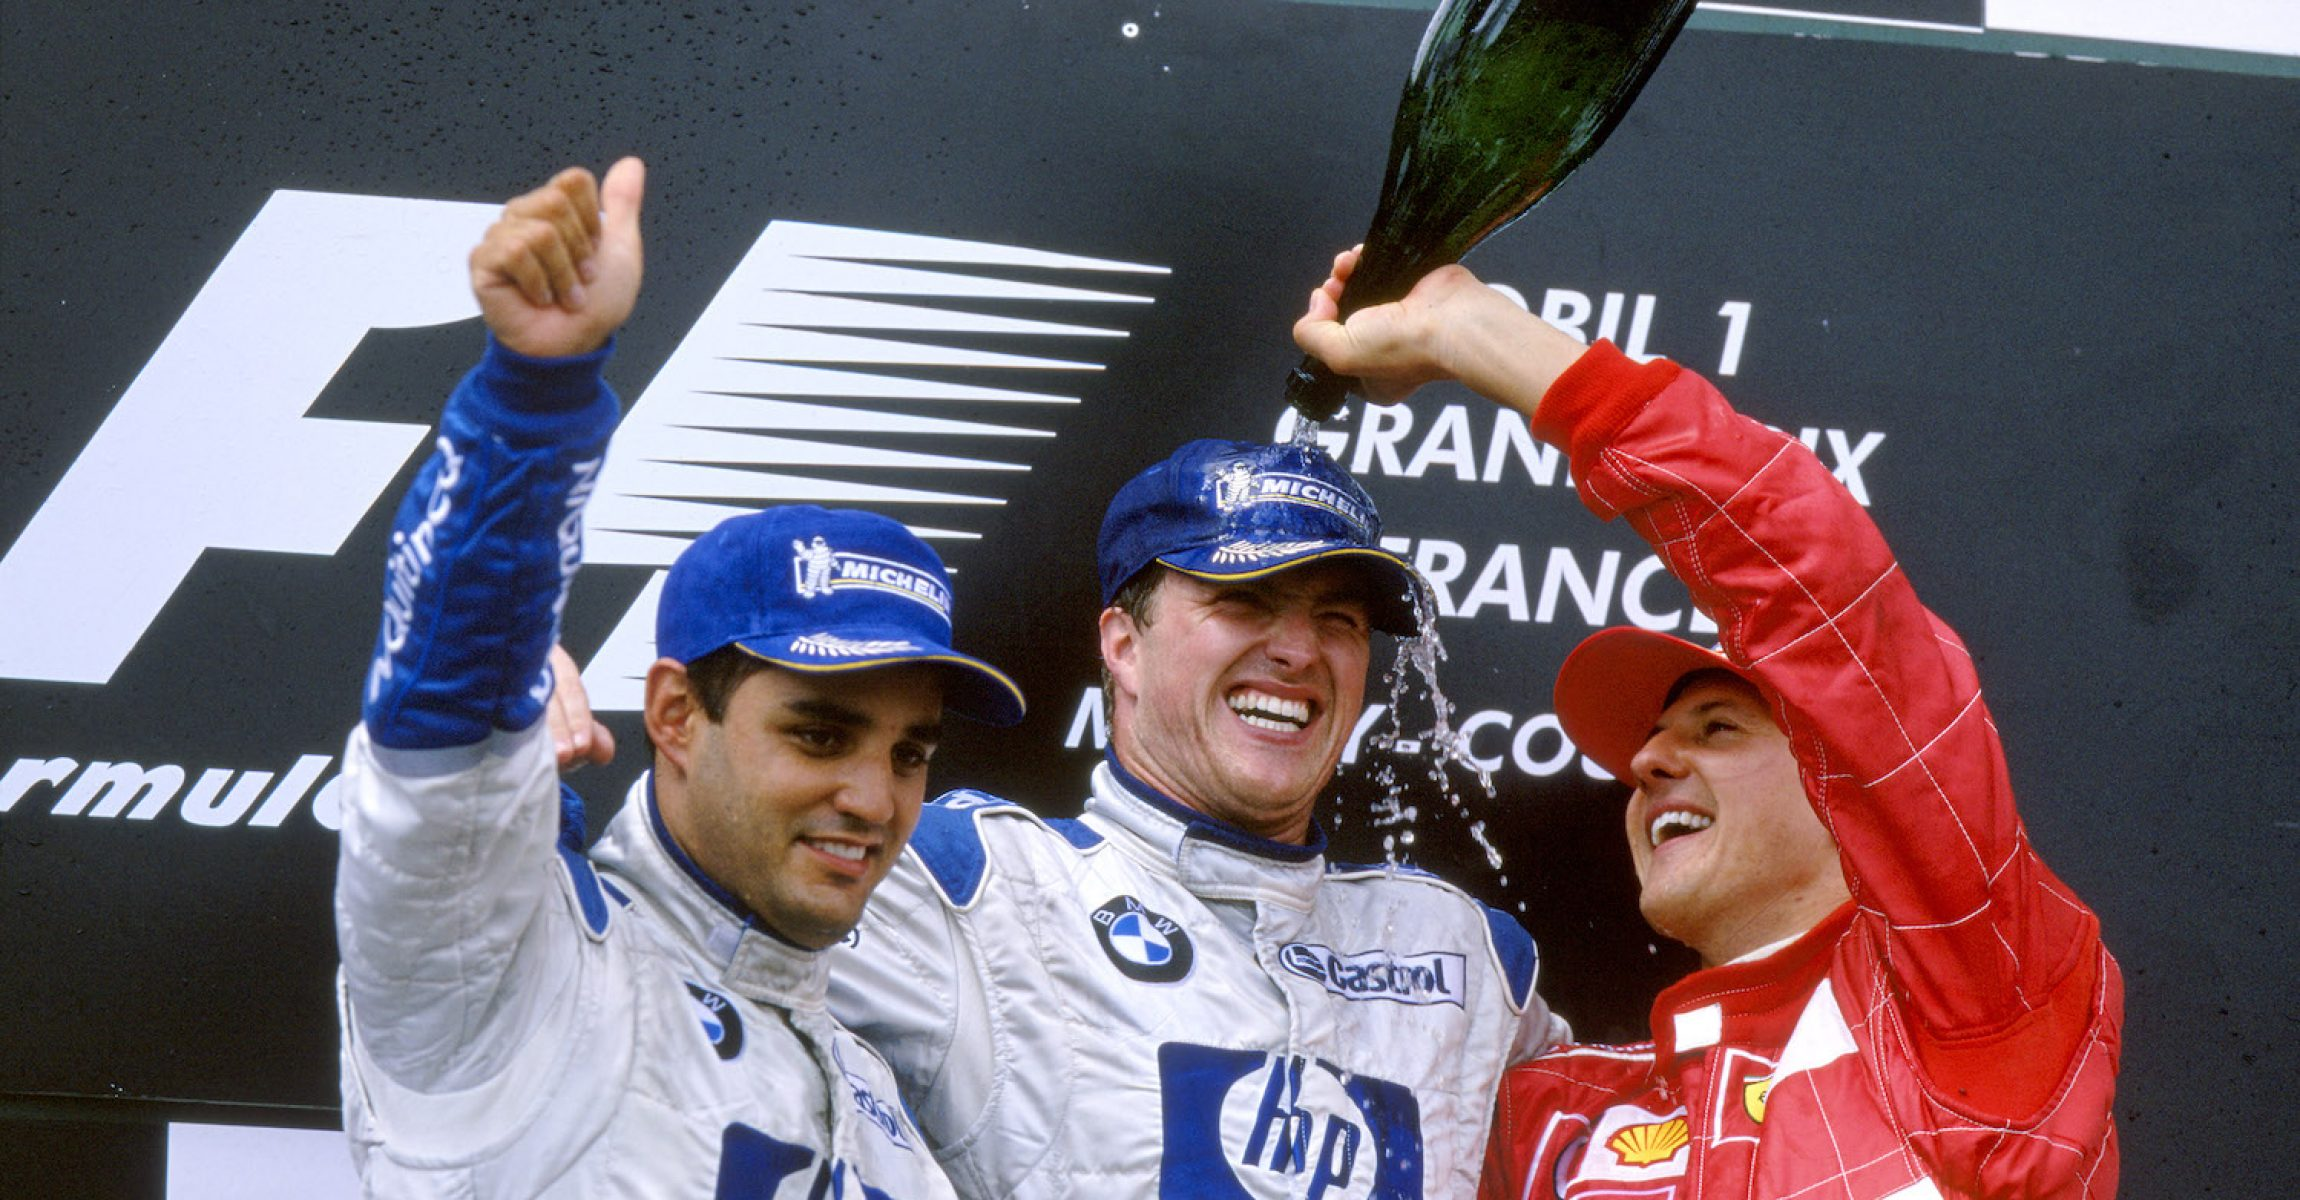 2003 French Grand Prix Magny Cours, France. 4th - 6th July 2003 Podium - Ralf Schumacher (Williams BMW) gets a champagne shower from thrid-placed brother Michael (Ferrari) as Juan Pablo Montoya (Williams BMW) celebrates another second place. World Copyright: Michael Cooper/LAT Photographic ref: 35mm Image 03 FRA 02